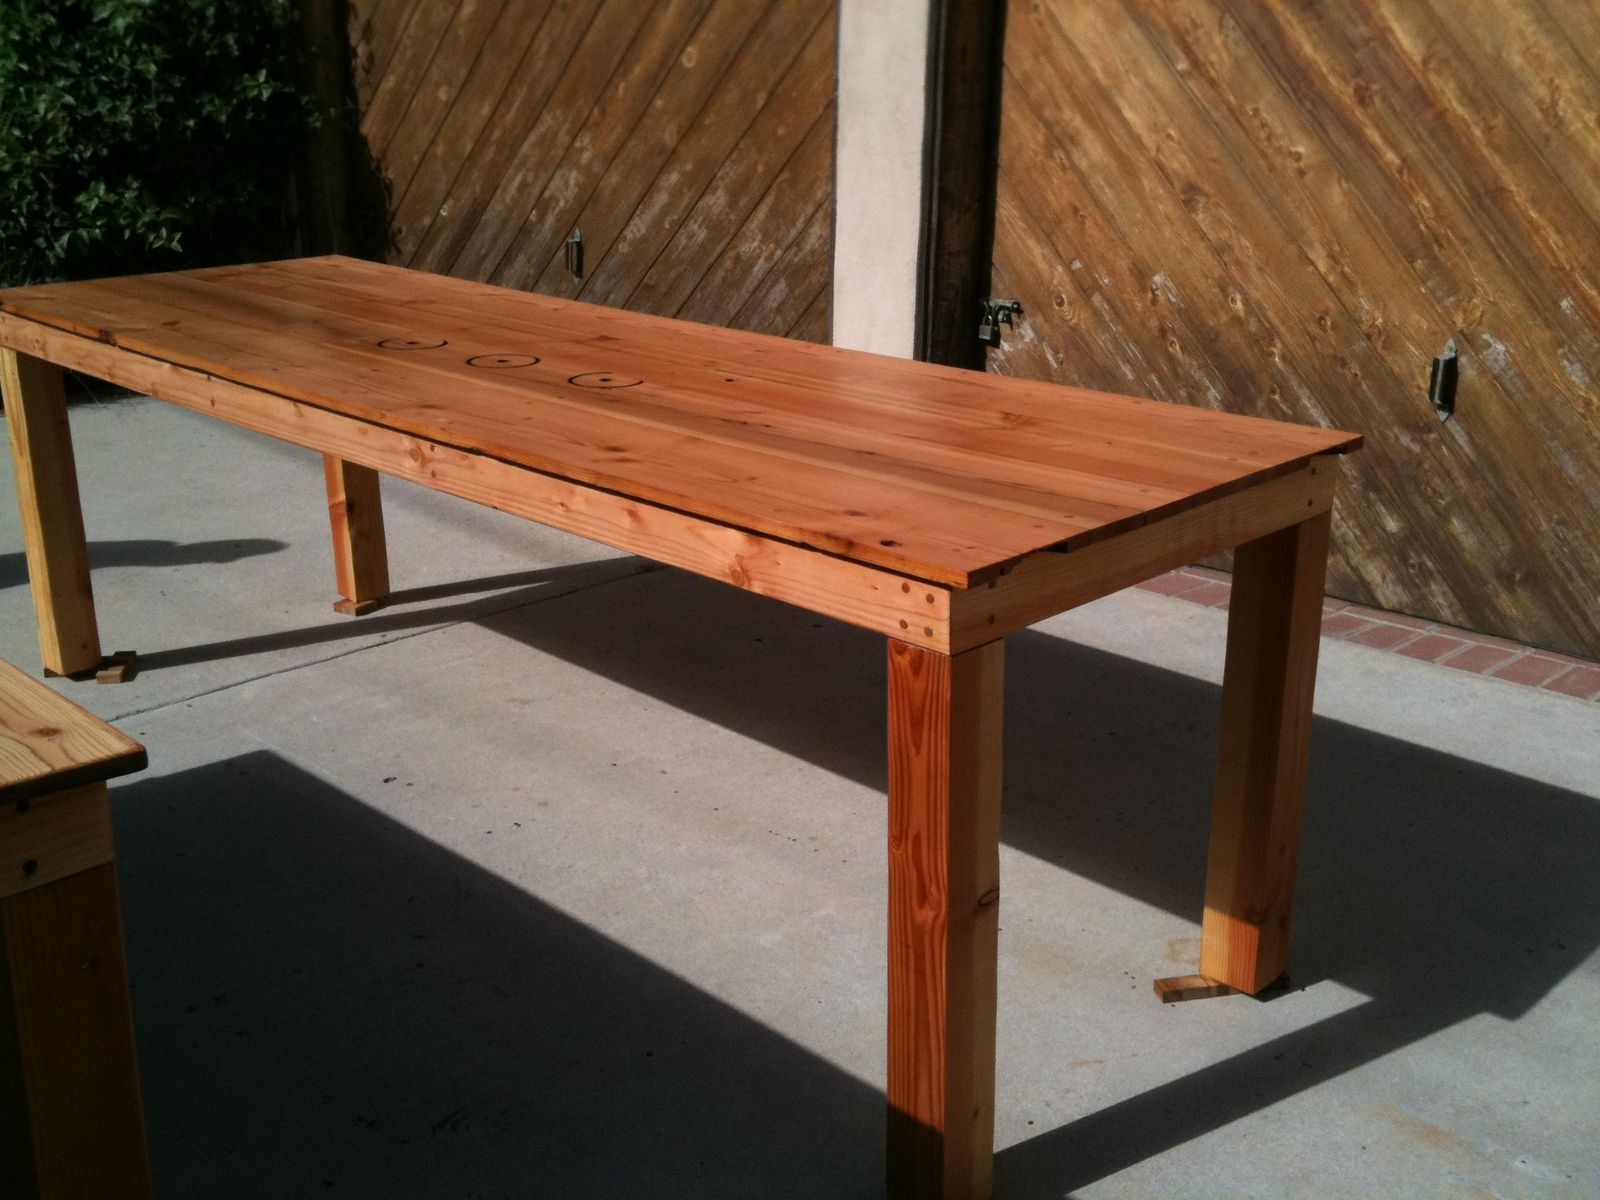 Japanese Dining Table For Sale Handmade Farm Tables For Sale By Dagan Design Custommade